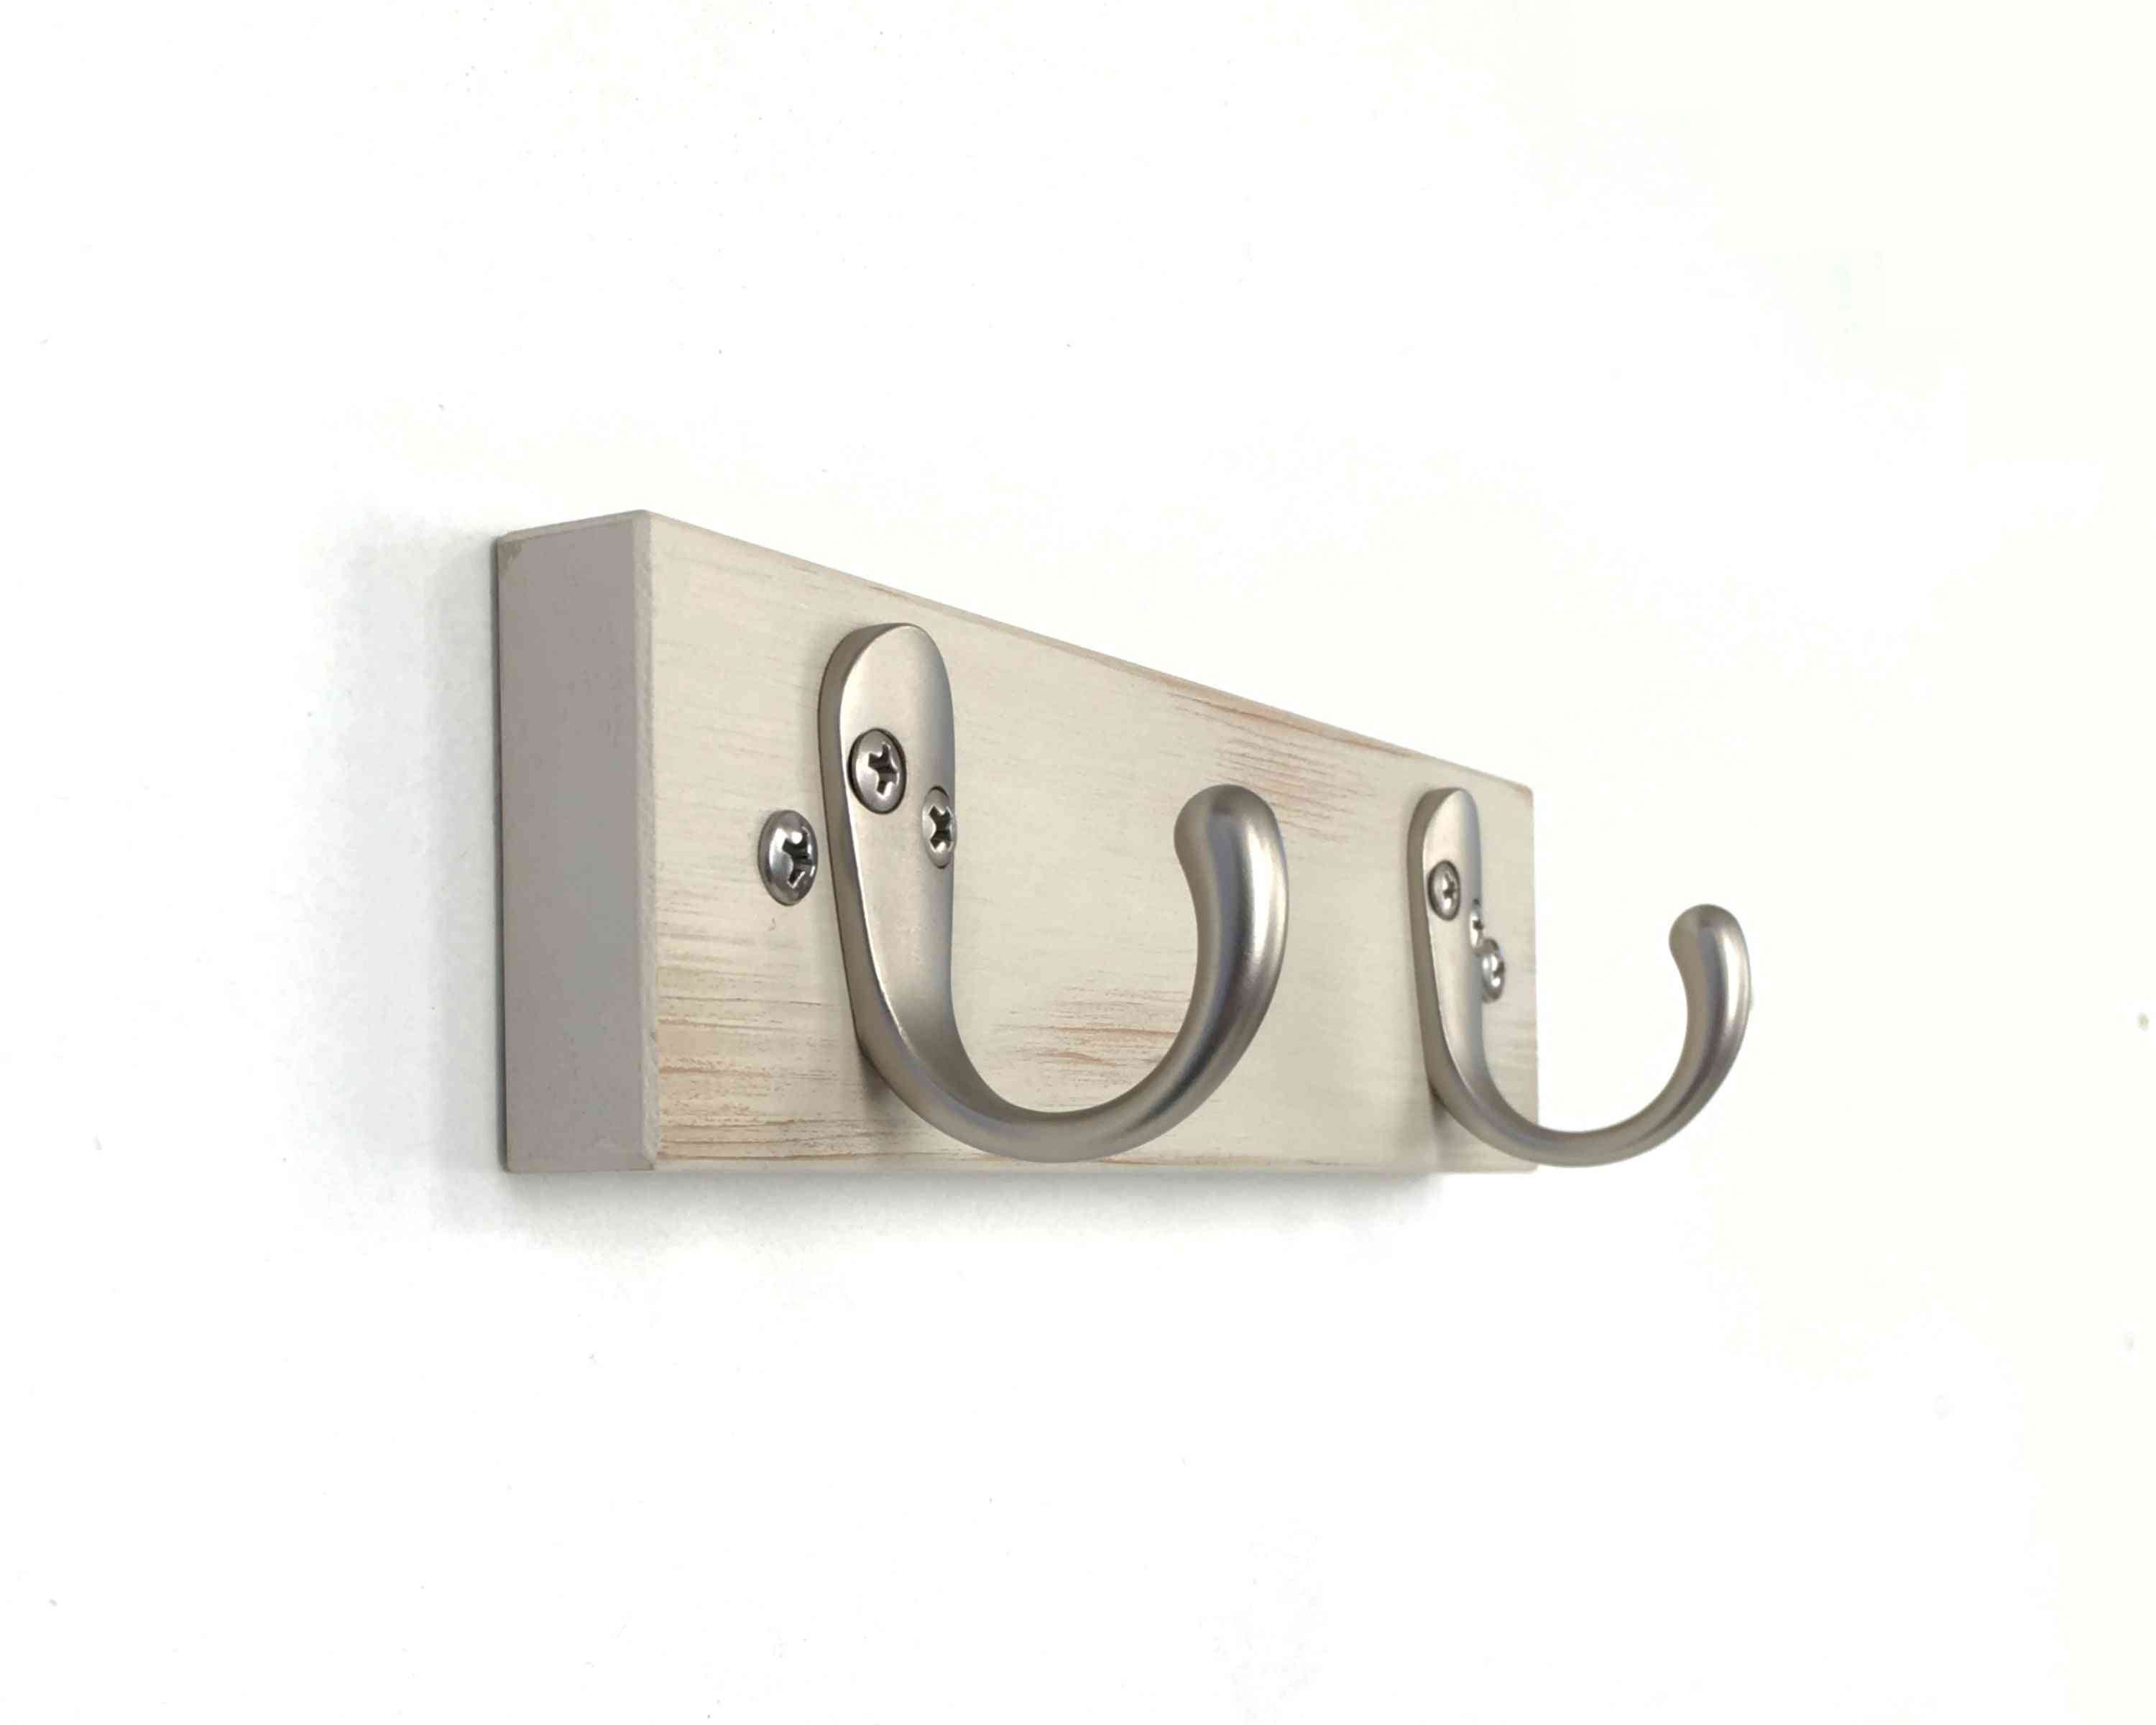 Hand Painted Hooks For Bedroom, Bath Or Kitchen